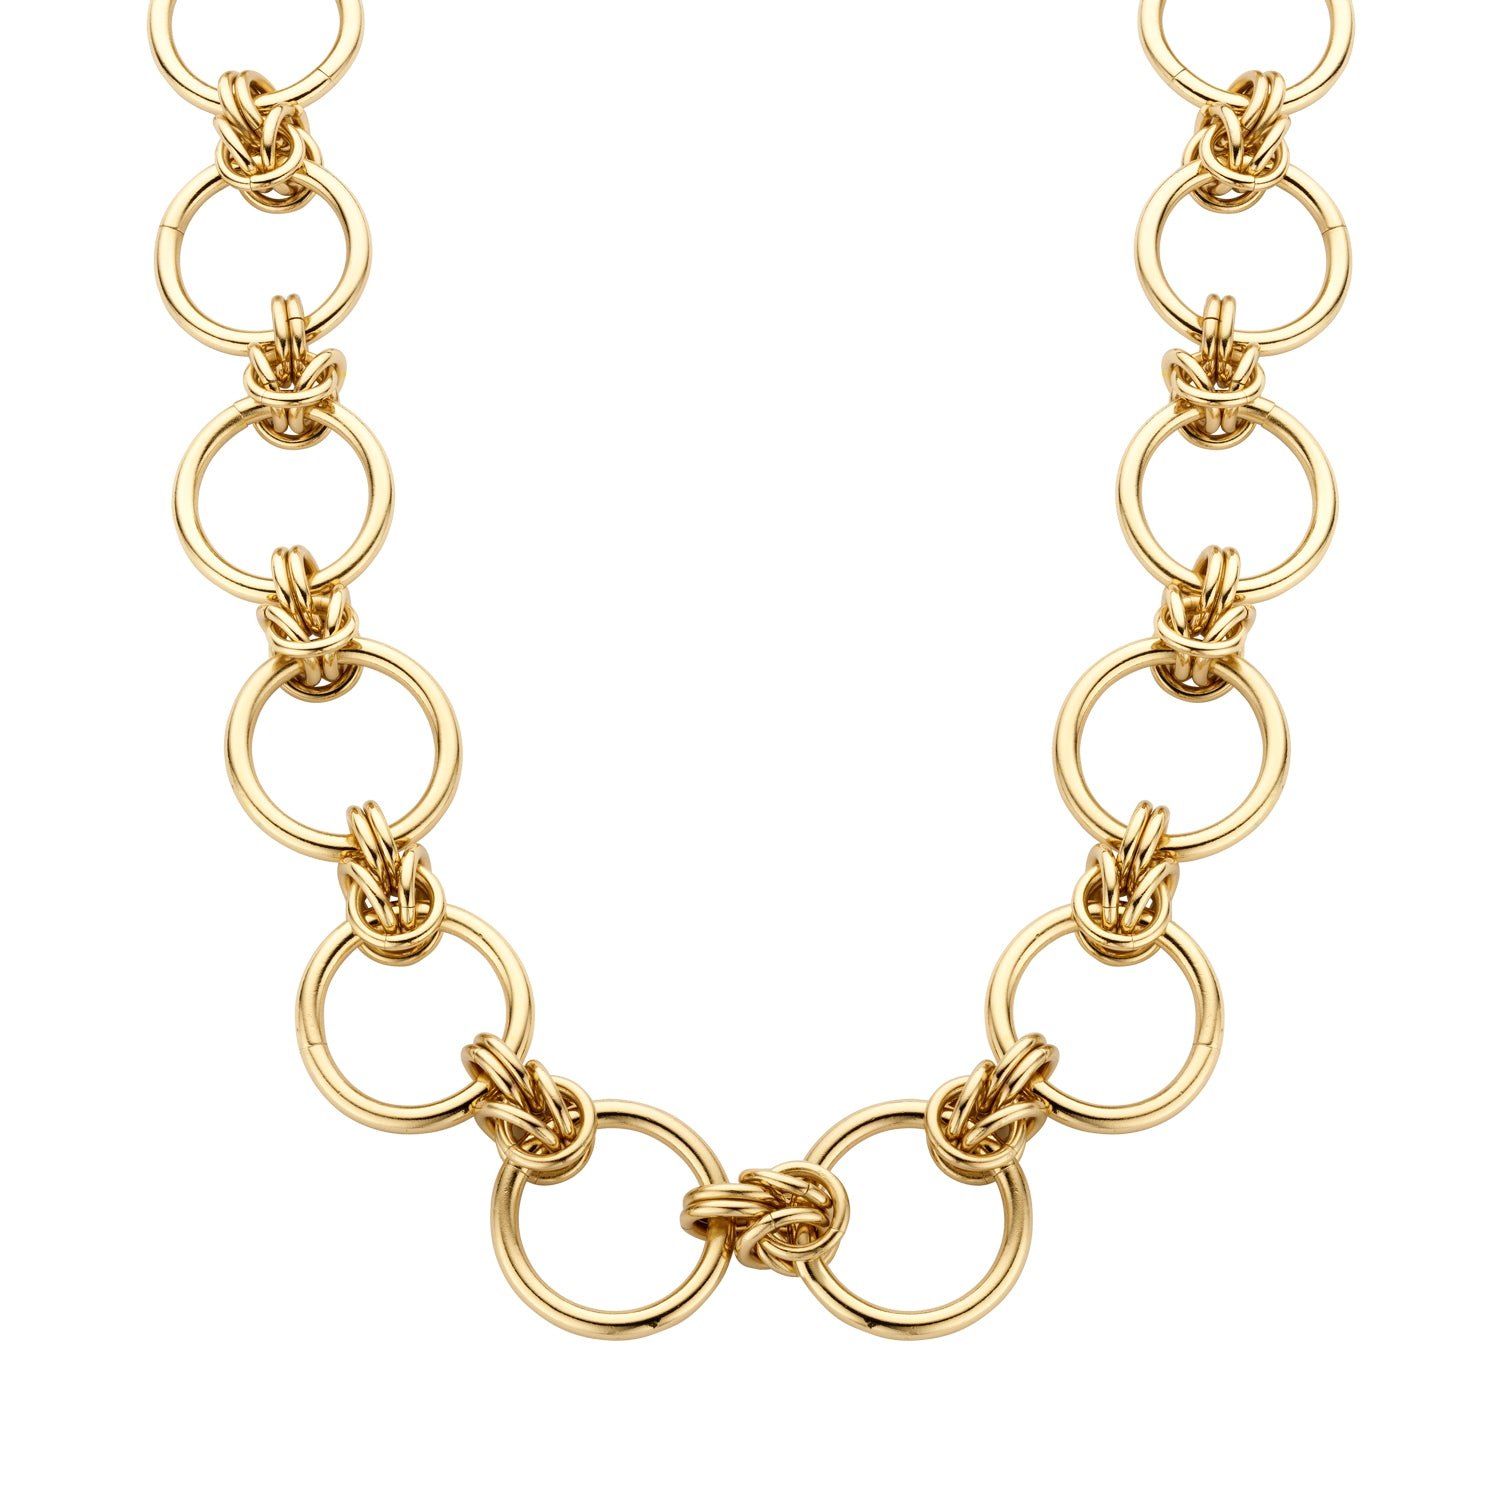 Rounds large chain gold necklace